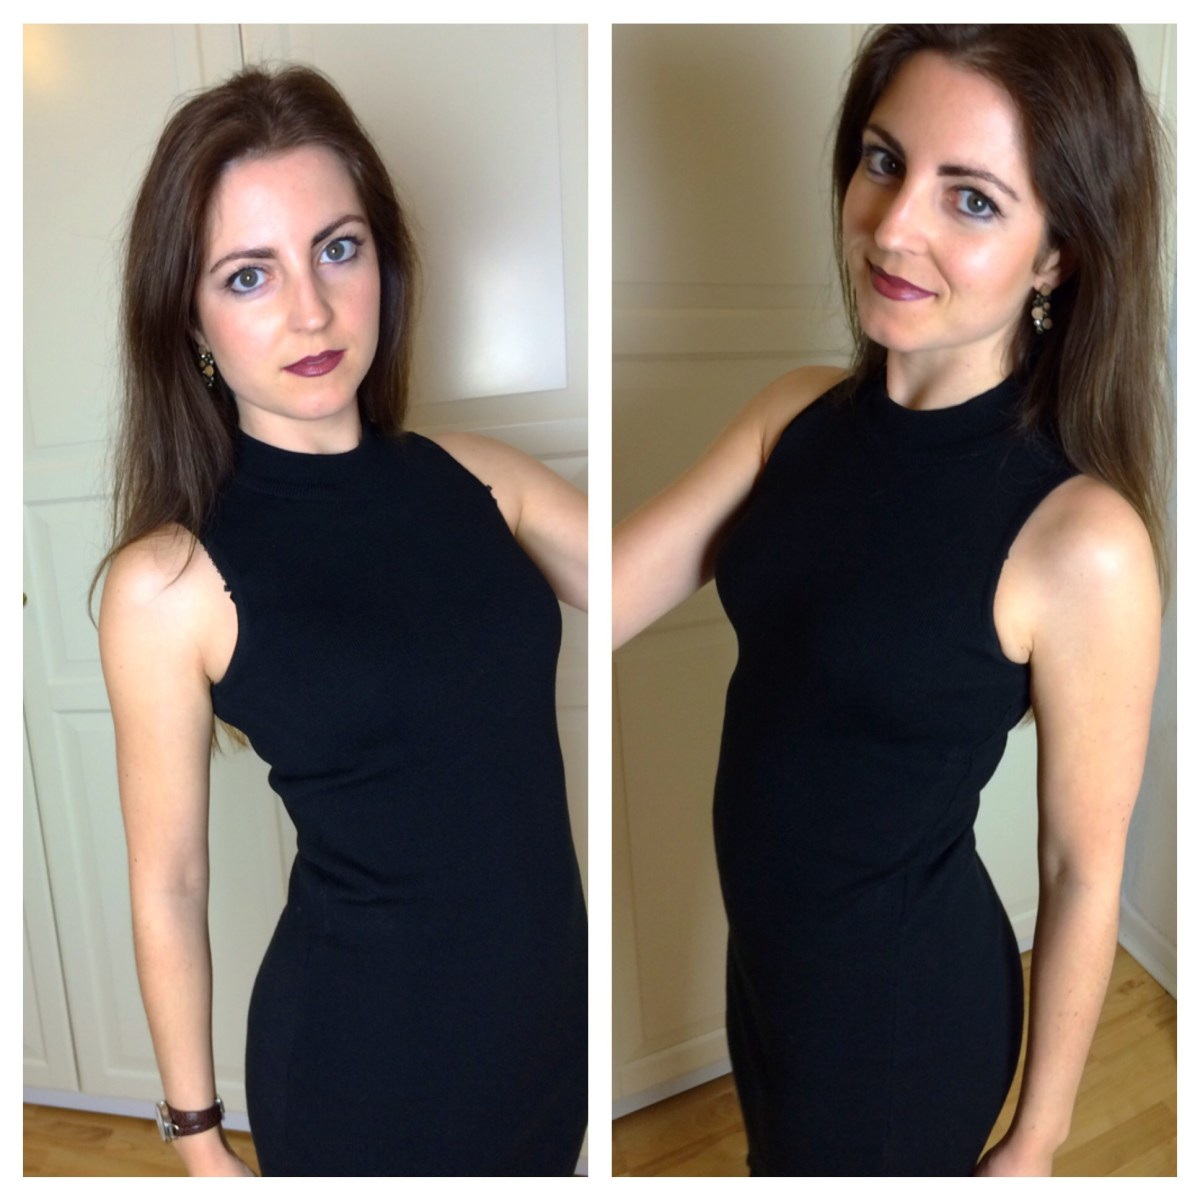 Outfit: The Black Turtleneck Dress